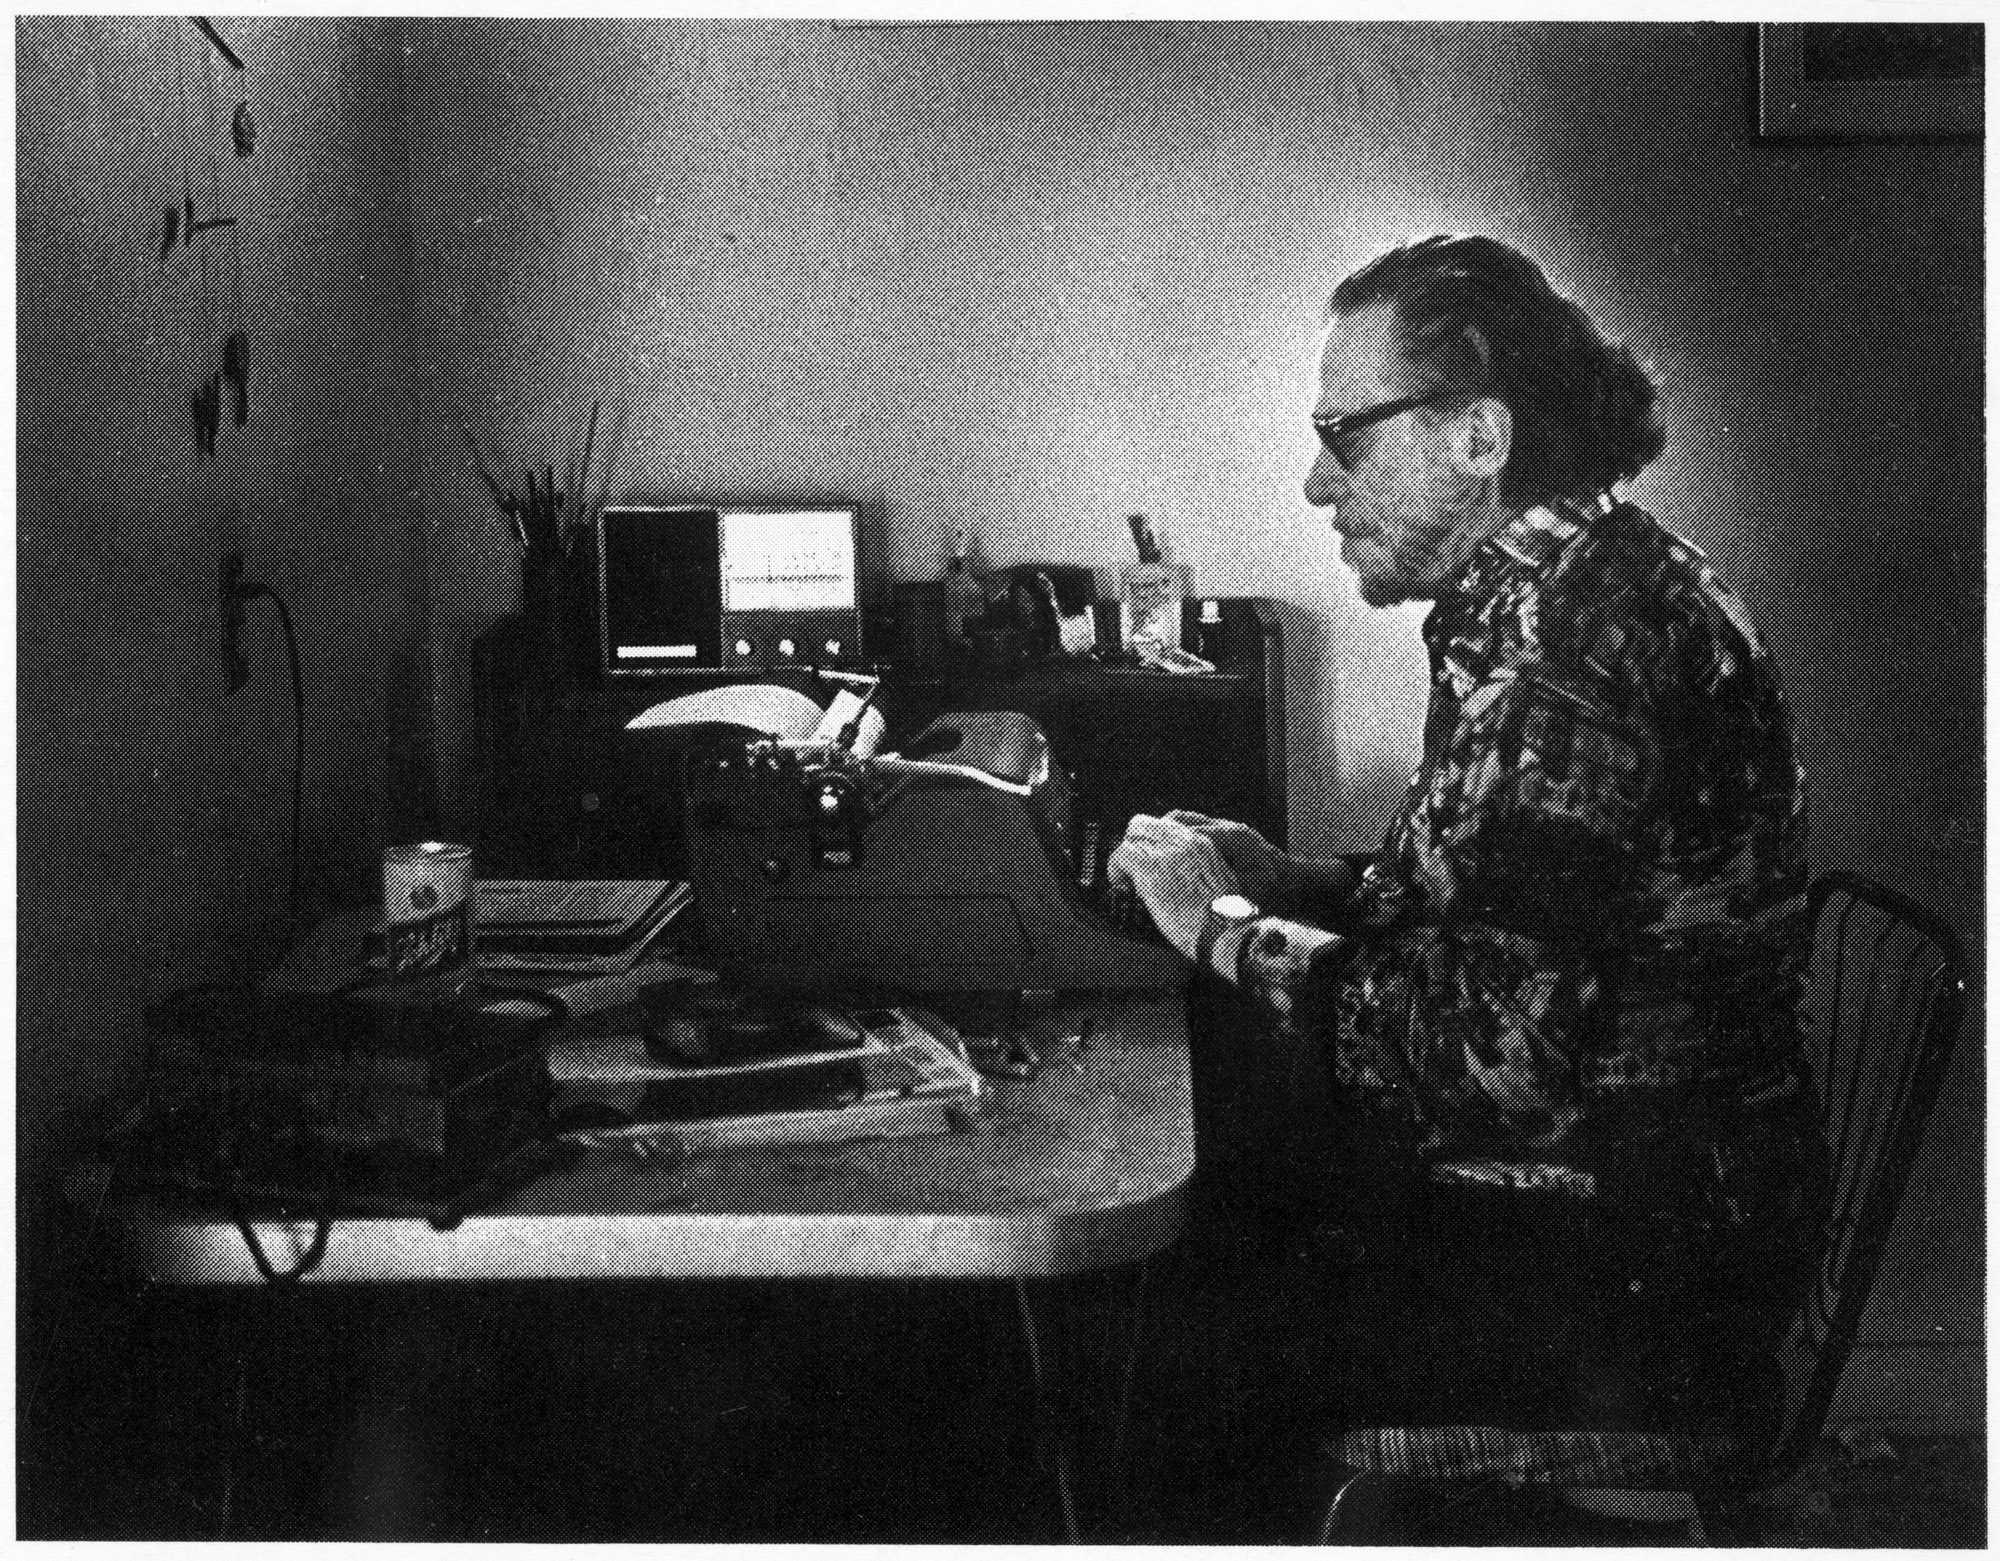 Postcard featuring Charles Bukowski at his typewriter in 1988. Photo by Joan Levine Gannij, published by Island International Bookstore, Amsterdam. Courtesy of the Huntington Library, Art Collections and Botanical Gardens. (HAND IN PHOTO 9-29-10)